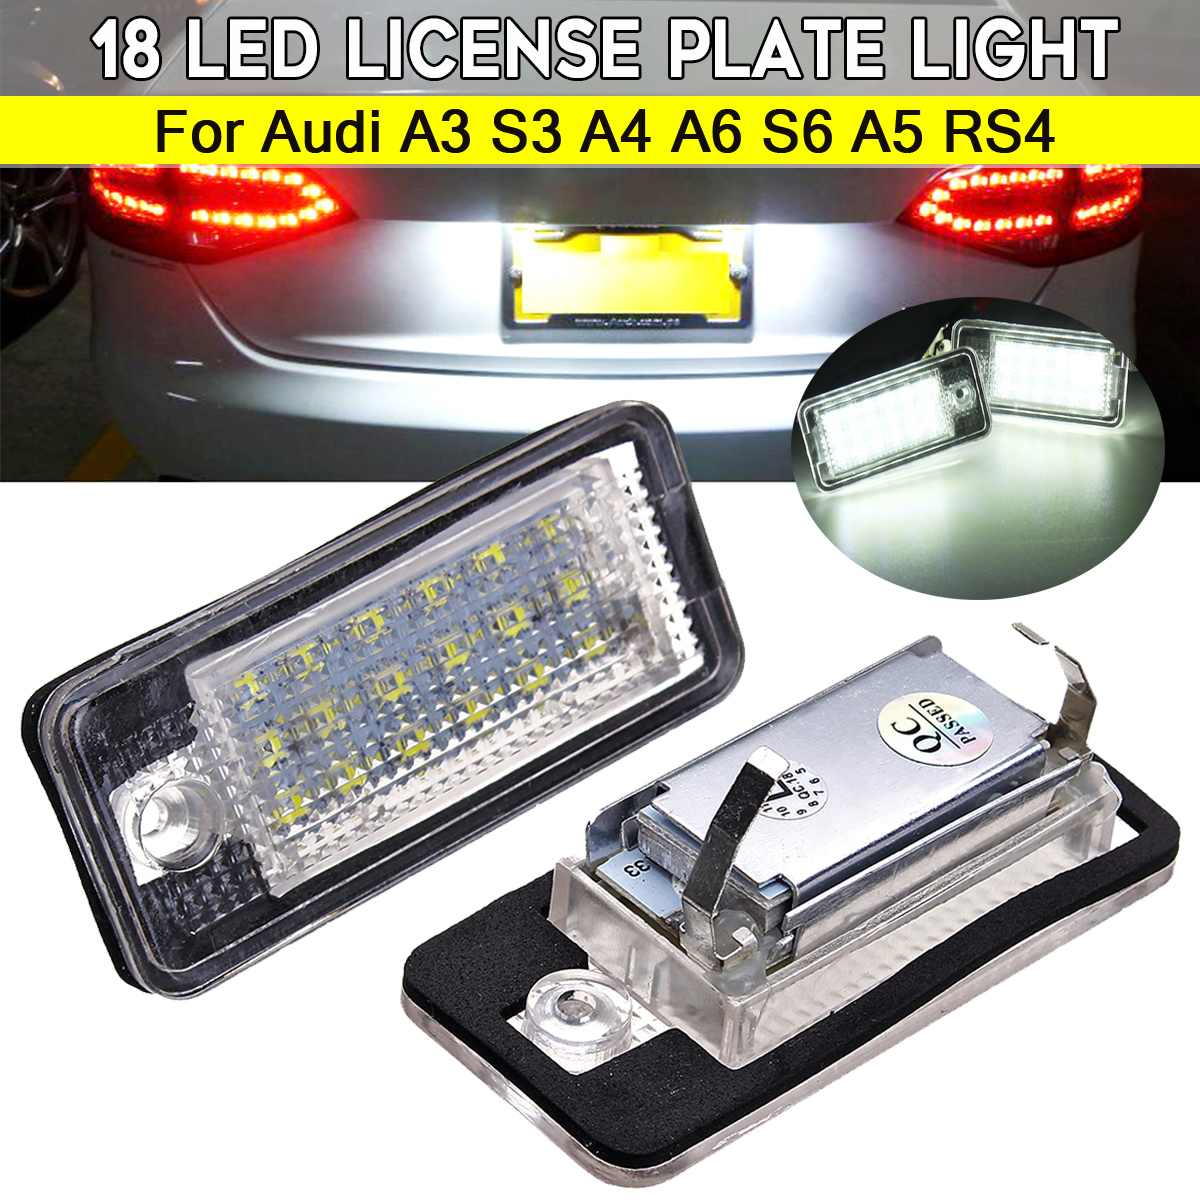 2PCS 12V 3 5W 18LED License Number Plate Light Error Free For Audi A3 S3 A4 A6 S6 A5 RS4 Car License Plate Lights 8E0807430A